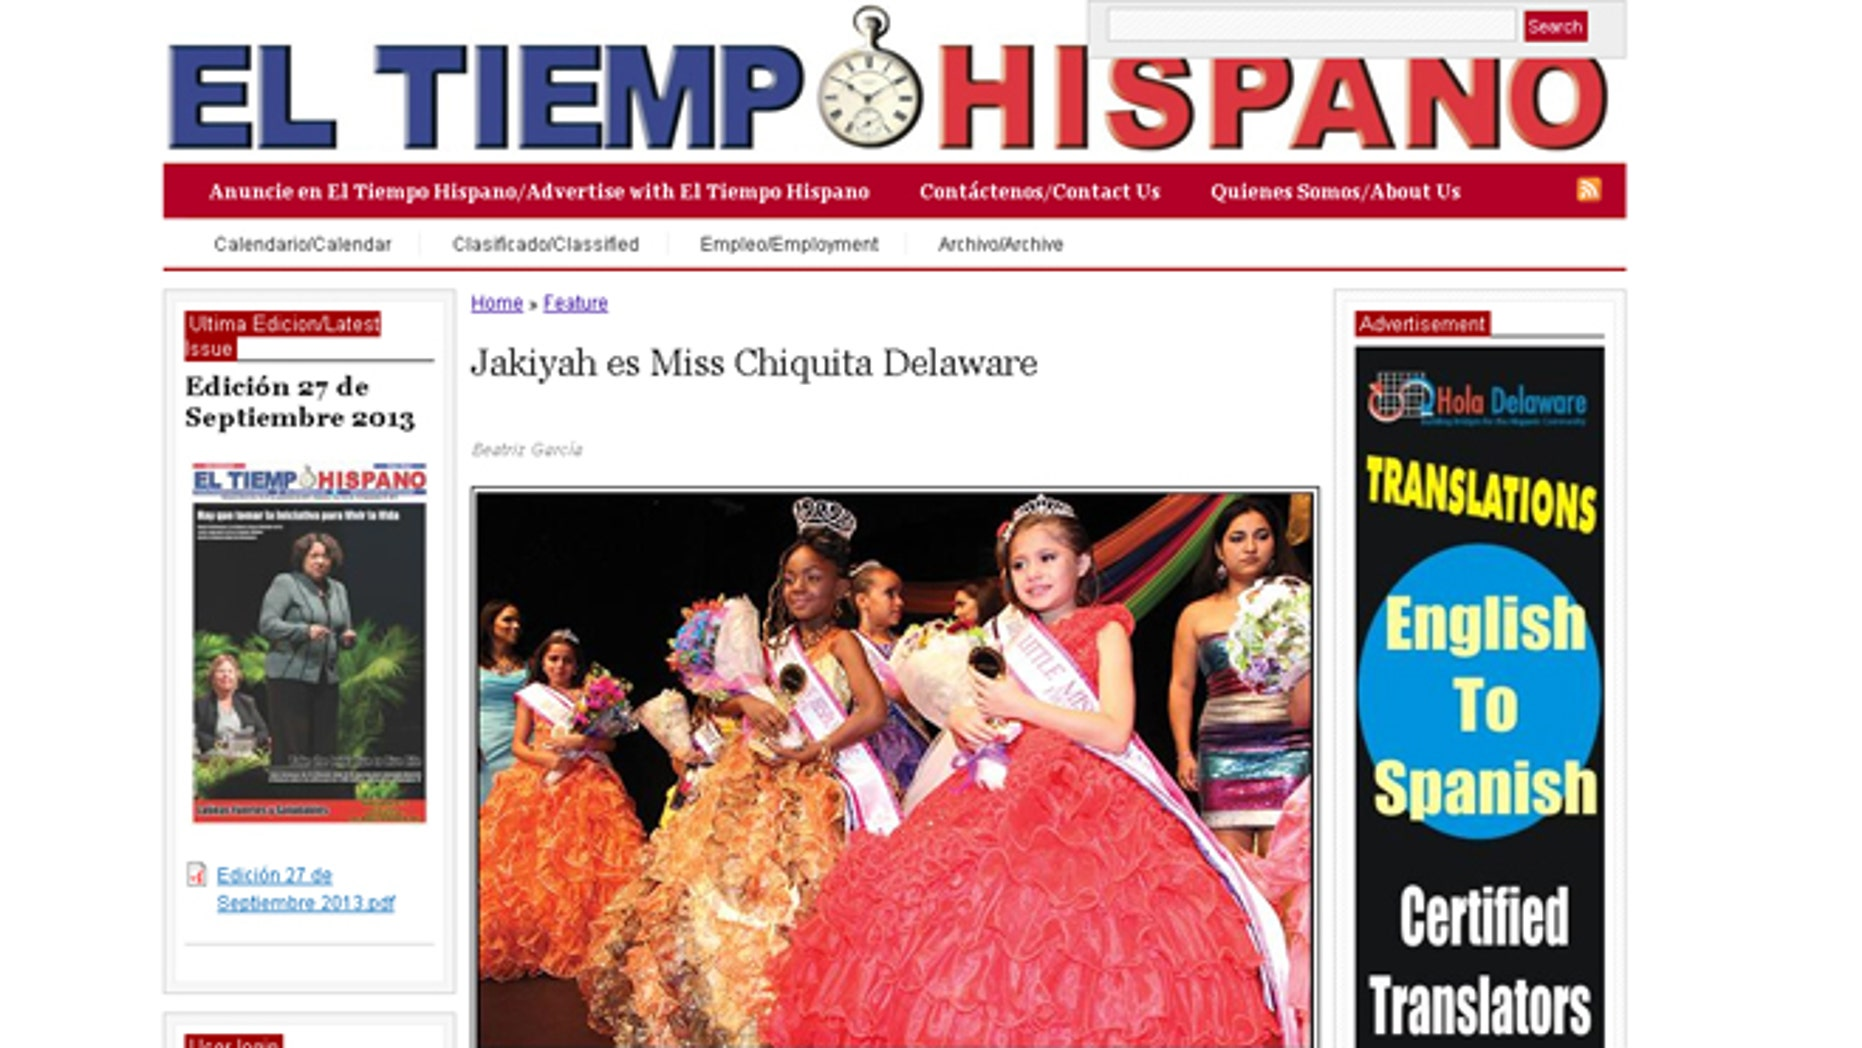 Beaming in a golden dress, sparkling crown and ear-to-ear smile, Jakiyah McKoy was crowned last month as Little Miss Hispanic Delaware. The 7-year-old, however, was only able to enjoy her title until last week, when pageant officials stripped the young beauty queen of her crown for not being able to prove her Latina heritage.